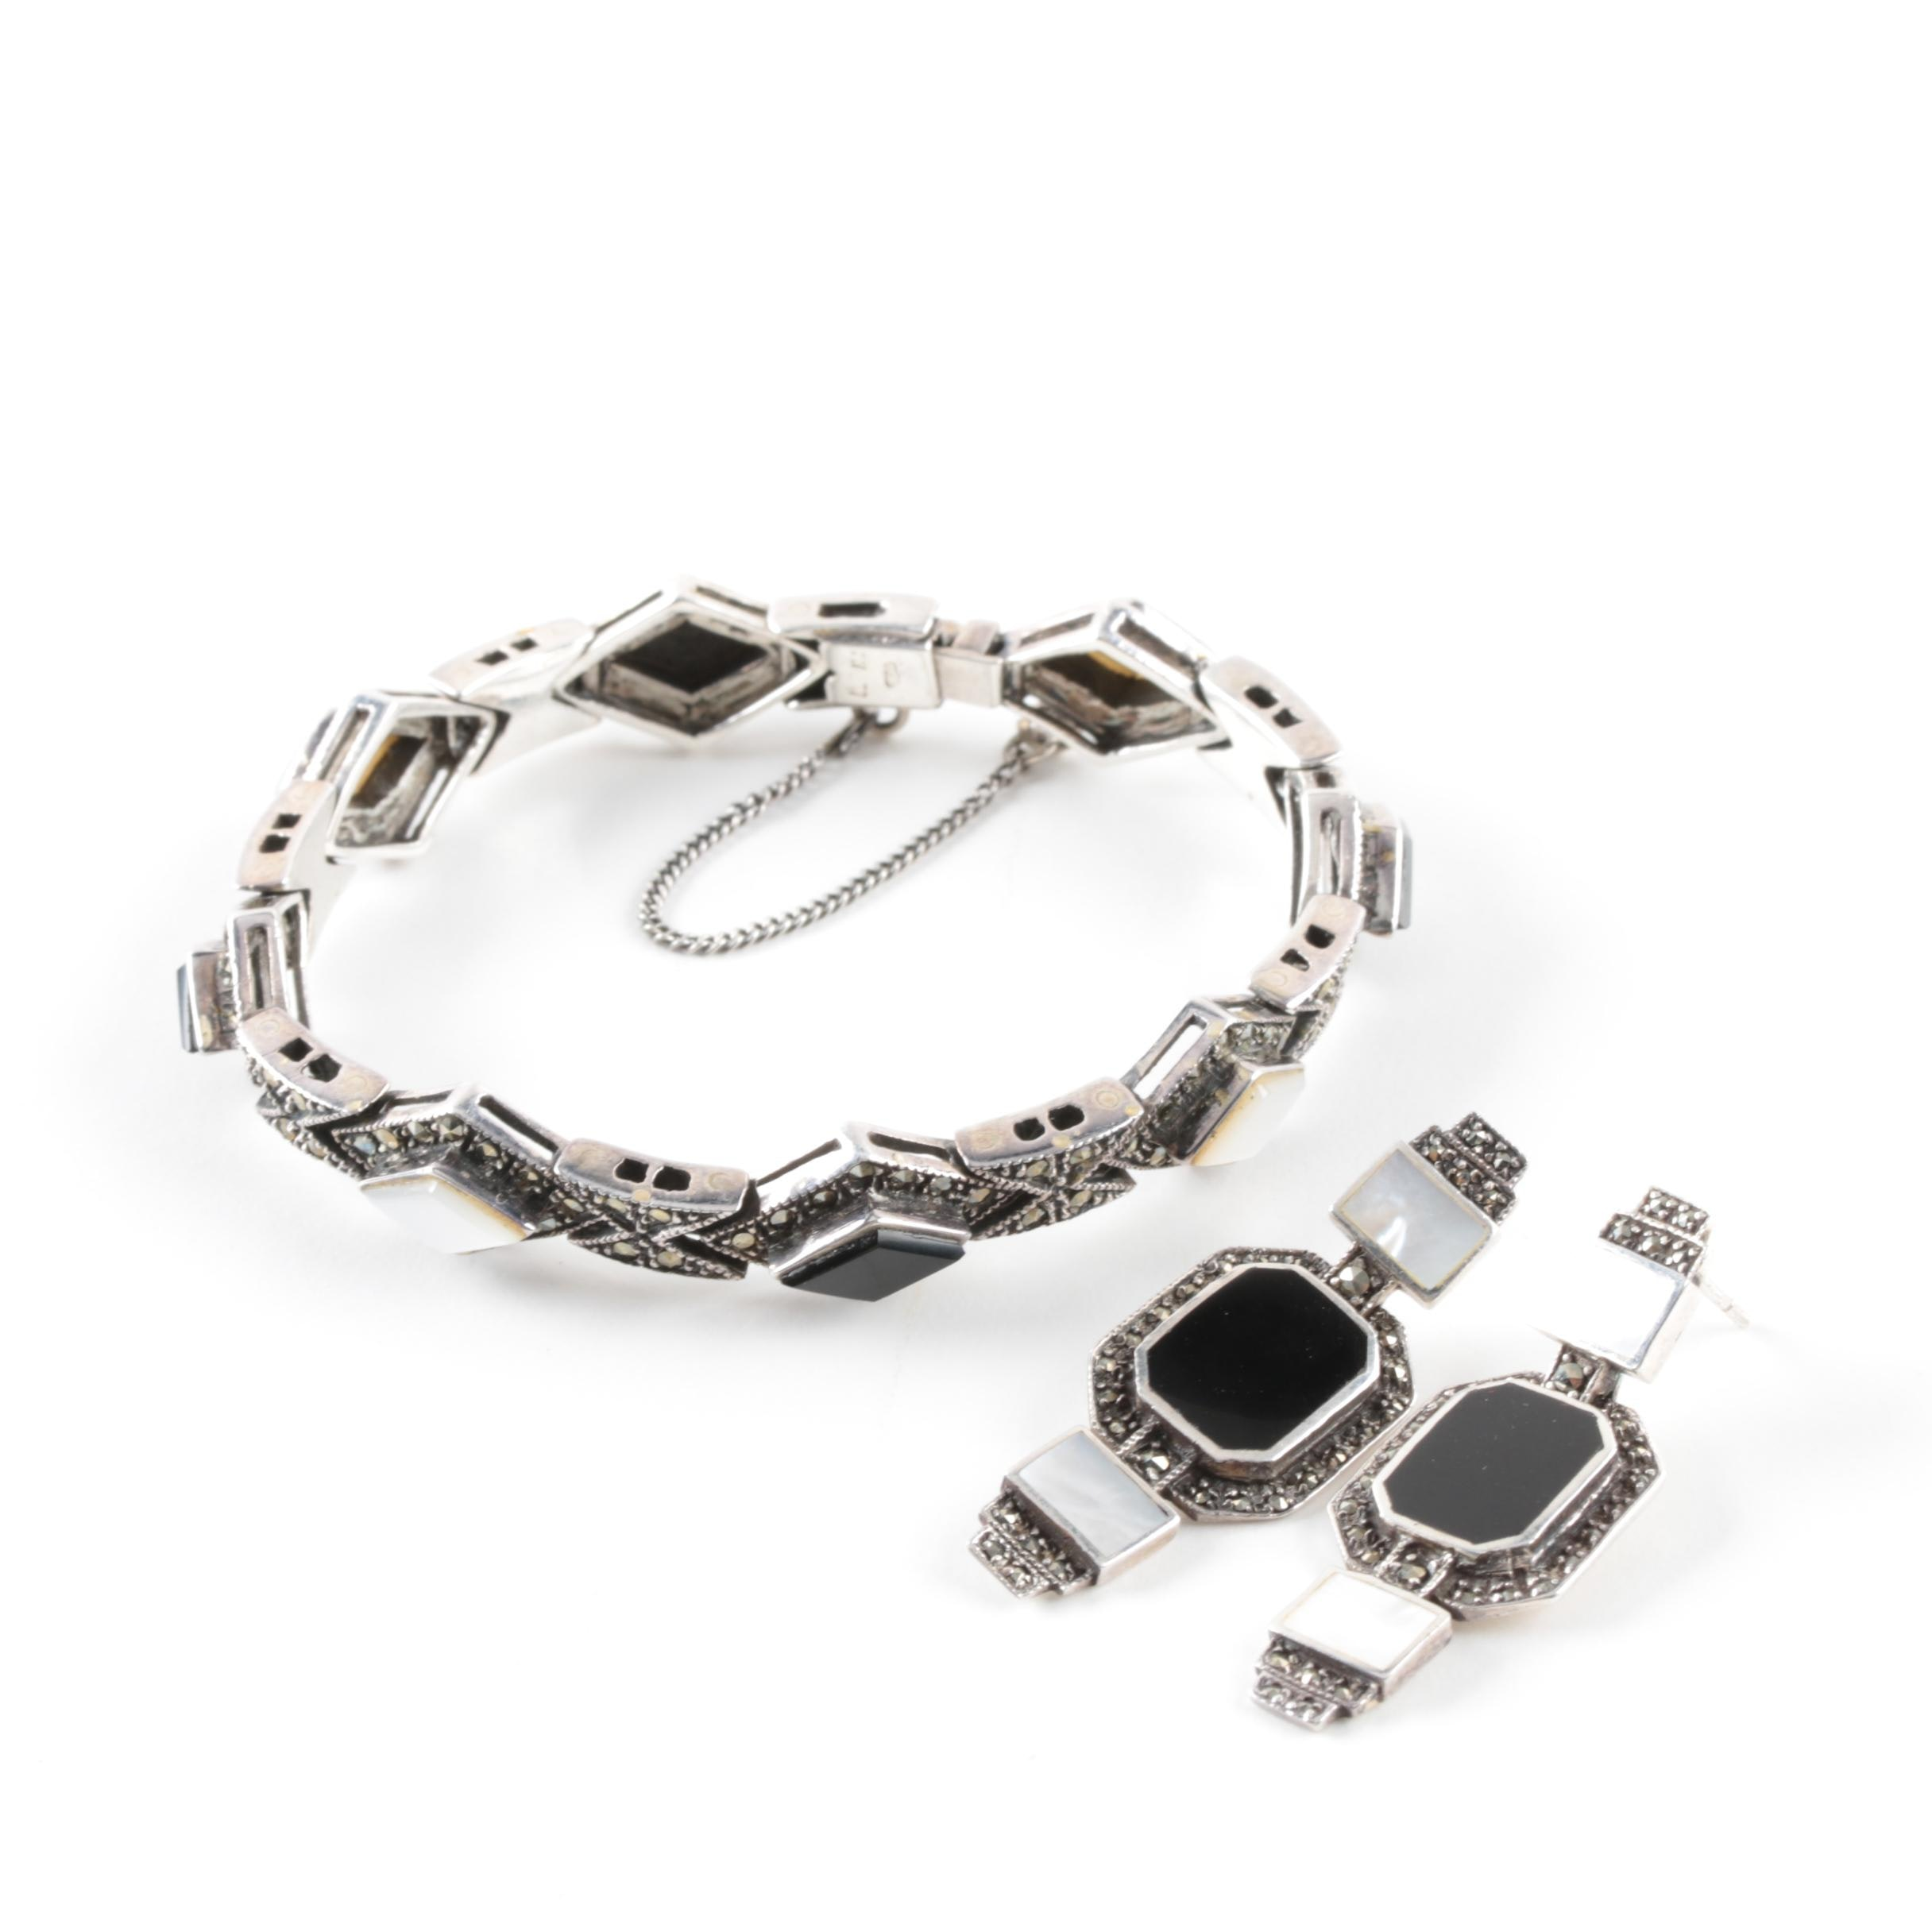 Sterling Silver Black Onyx, Mother of Pearl, and Marcasite Bracelet and Earrings